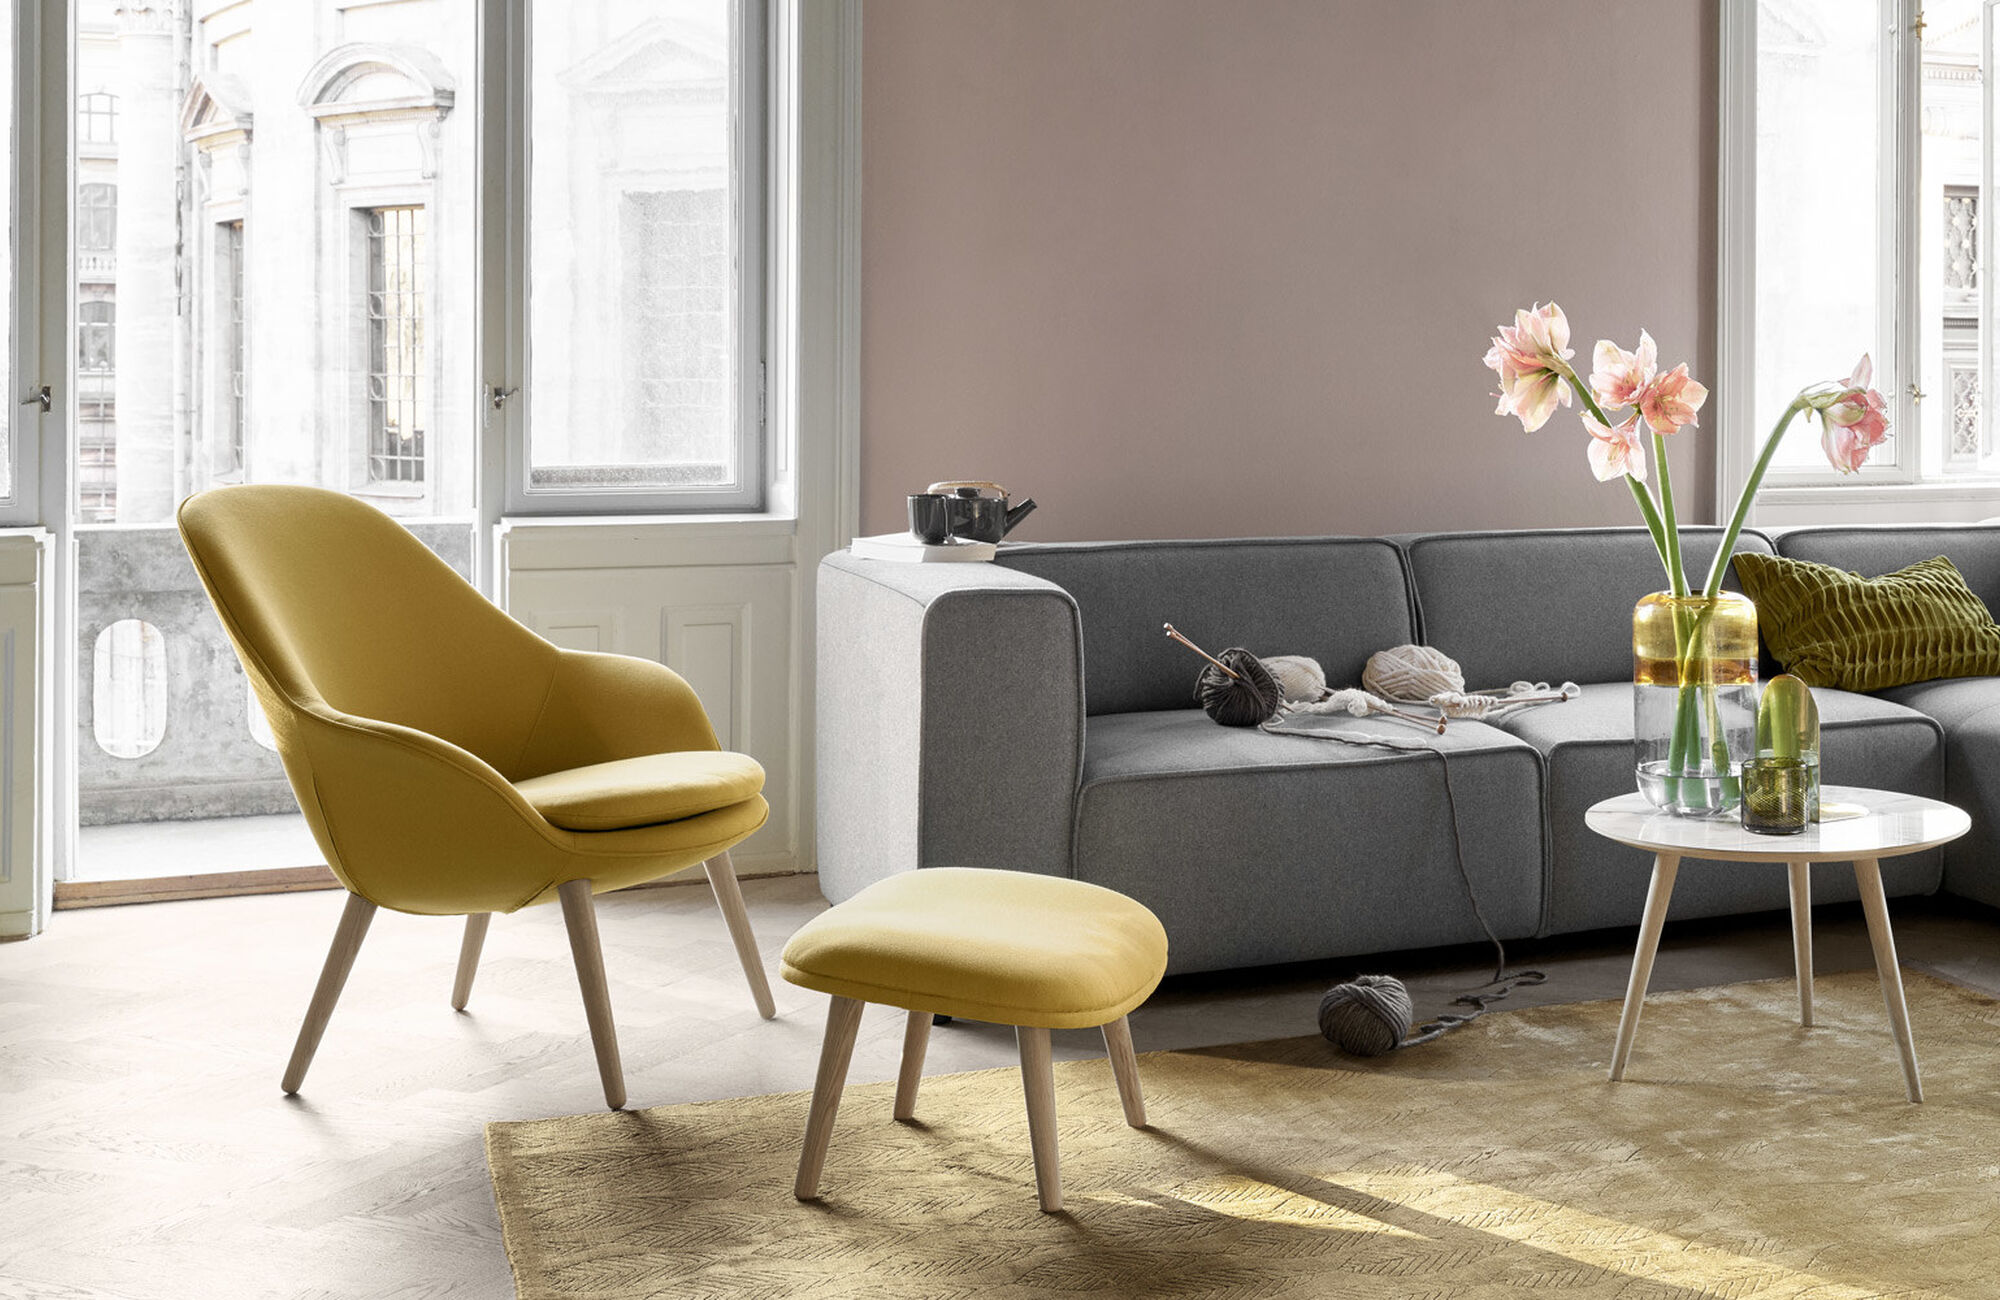 Dusty rose - Adelaide living chair